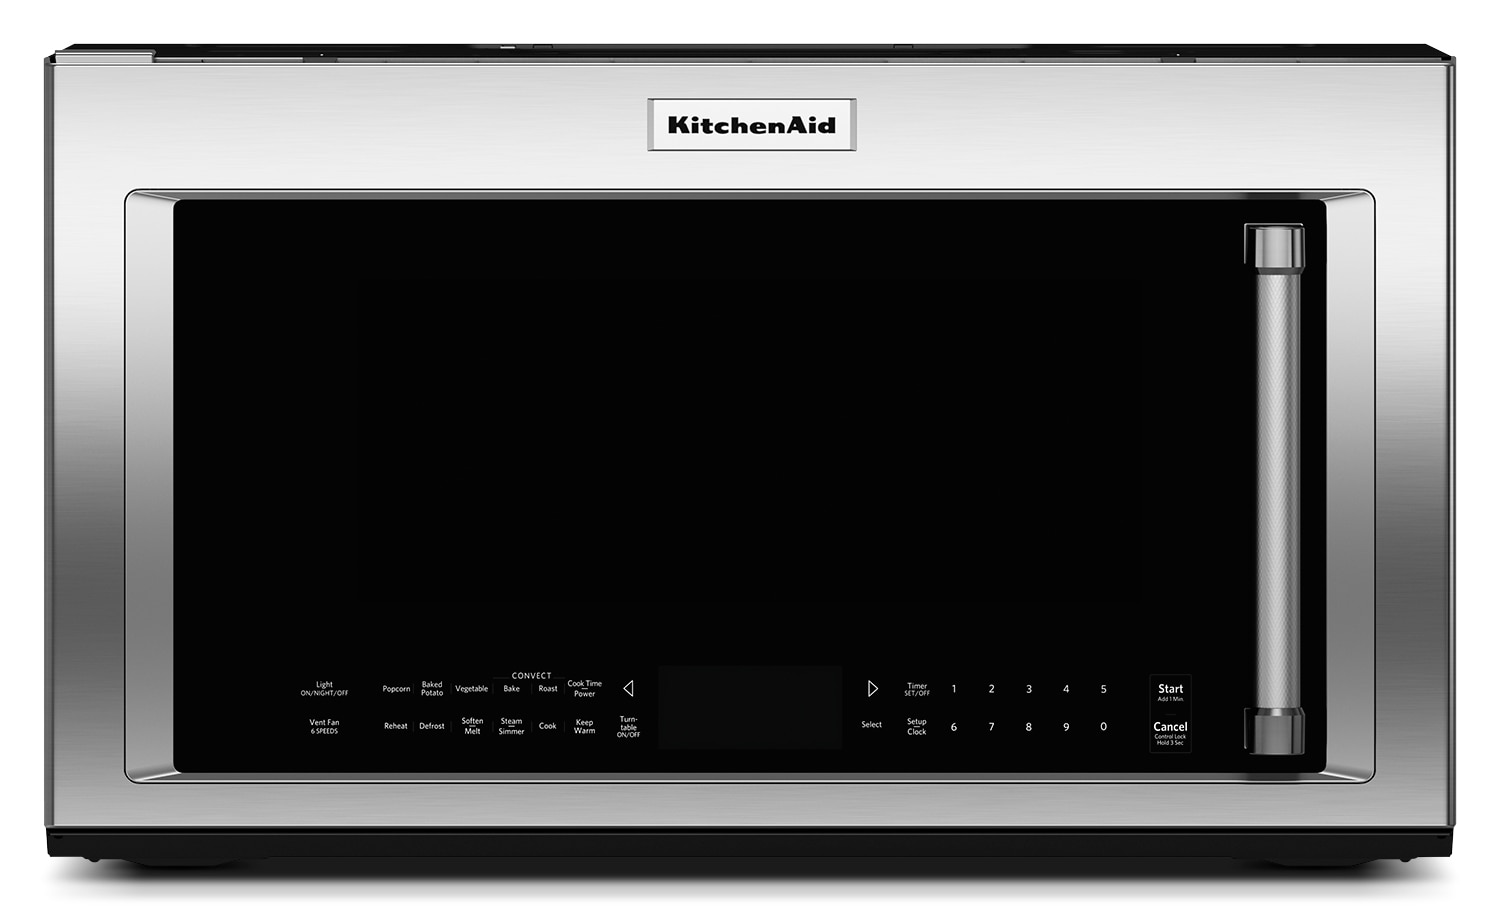 Kitchenaid stainless steel over the range microwave 1 9 for Kitchenaid microwave